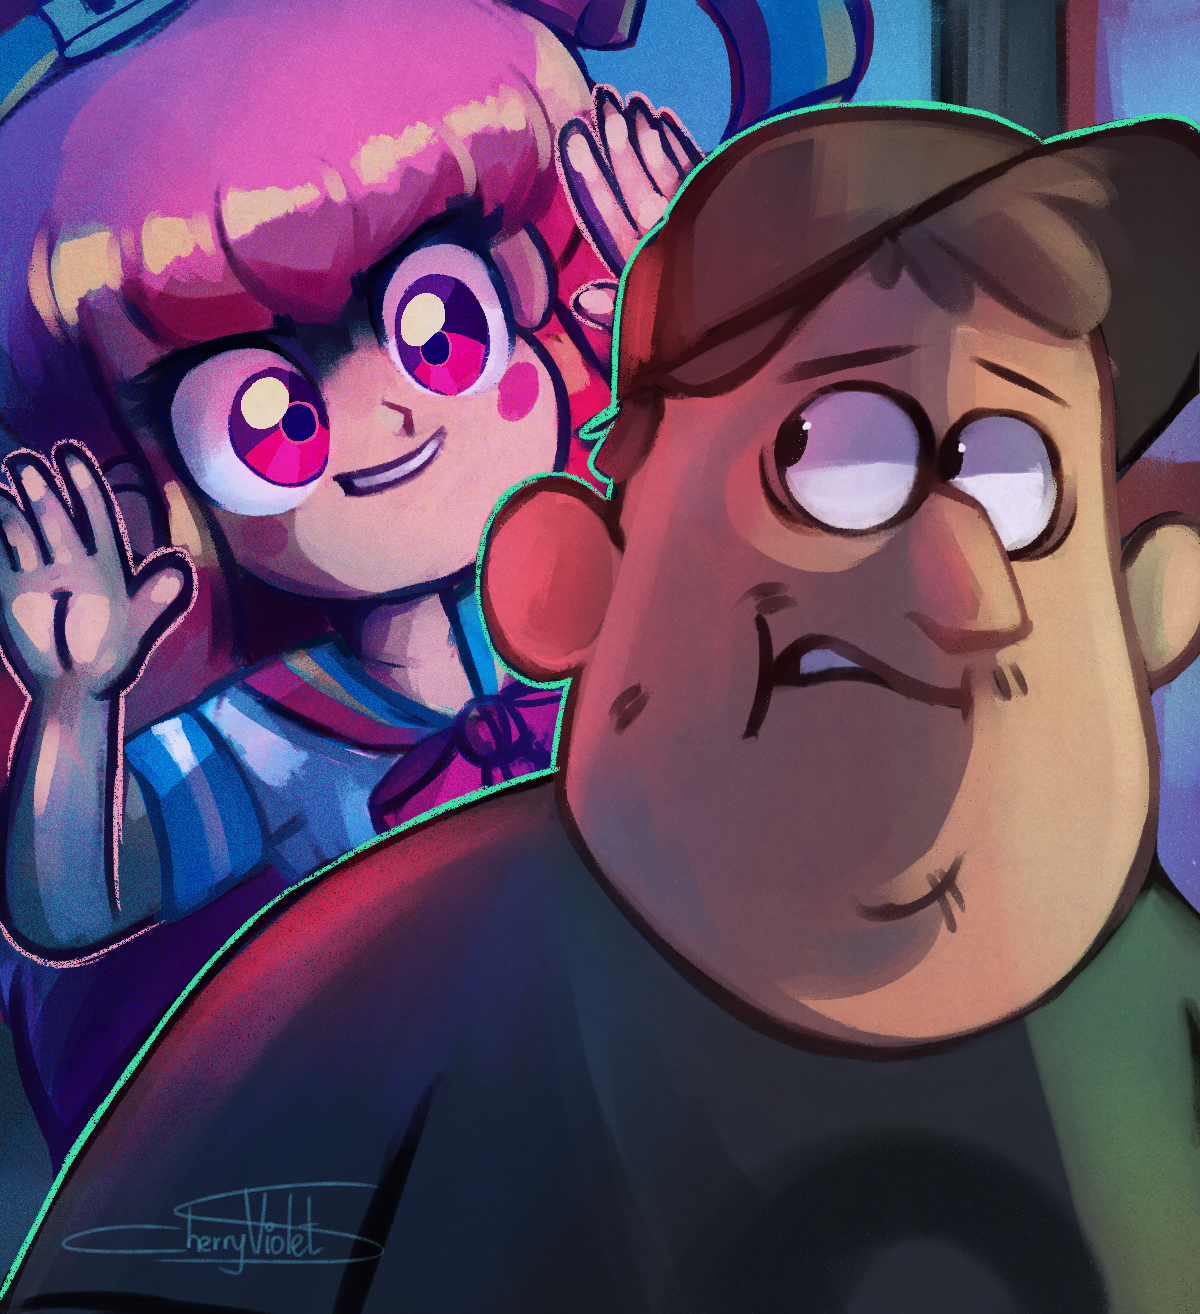 Soos and the Real Girl